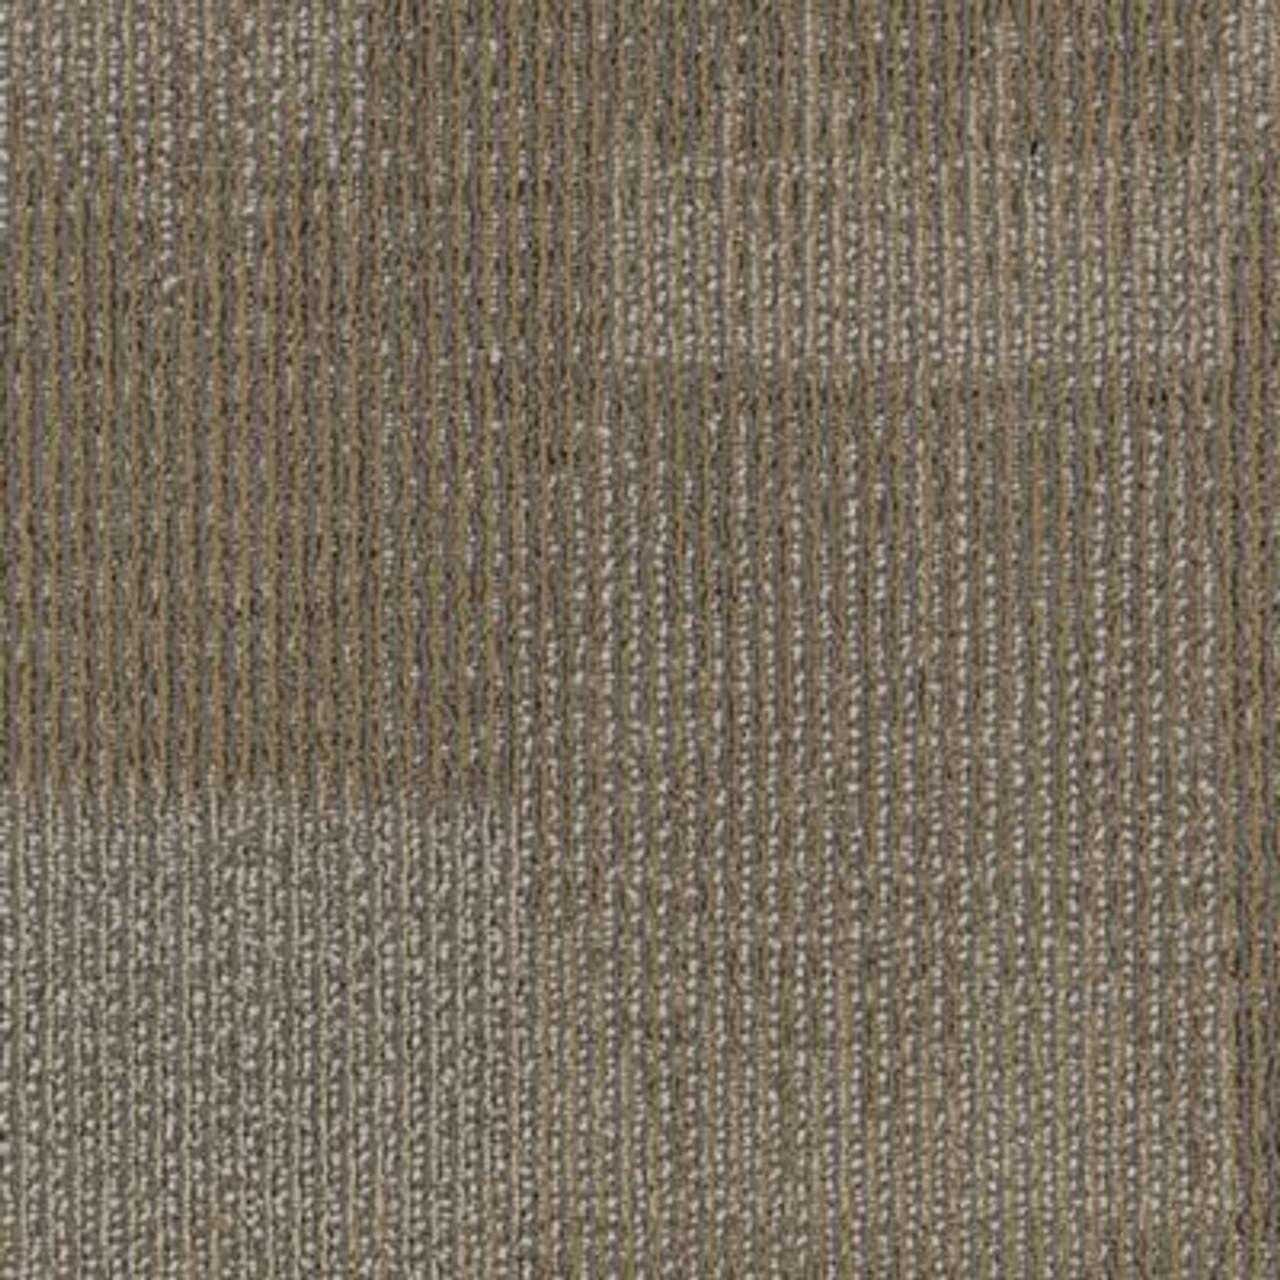 Image of: Mohawk Onward Bound Performance Driven Carpet Tile Regal Floor Coverings